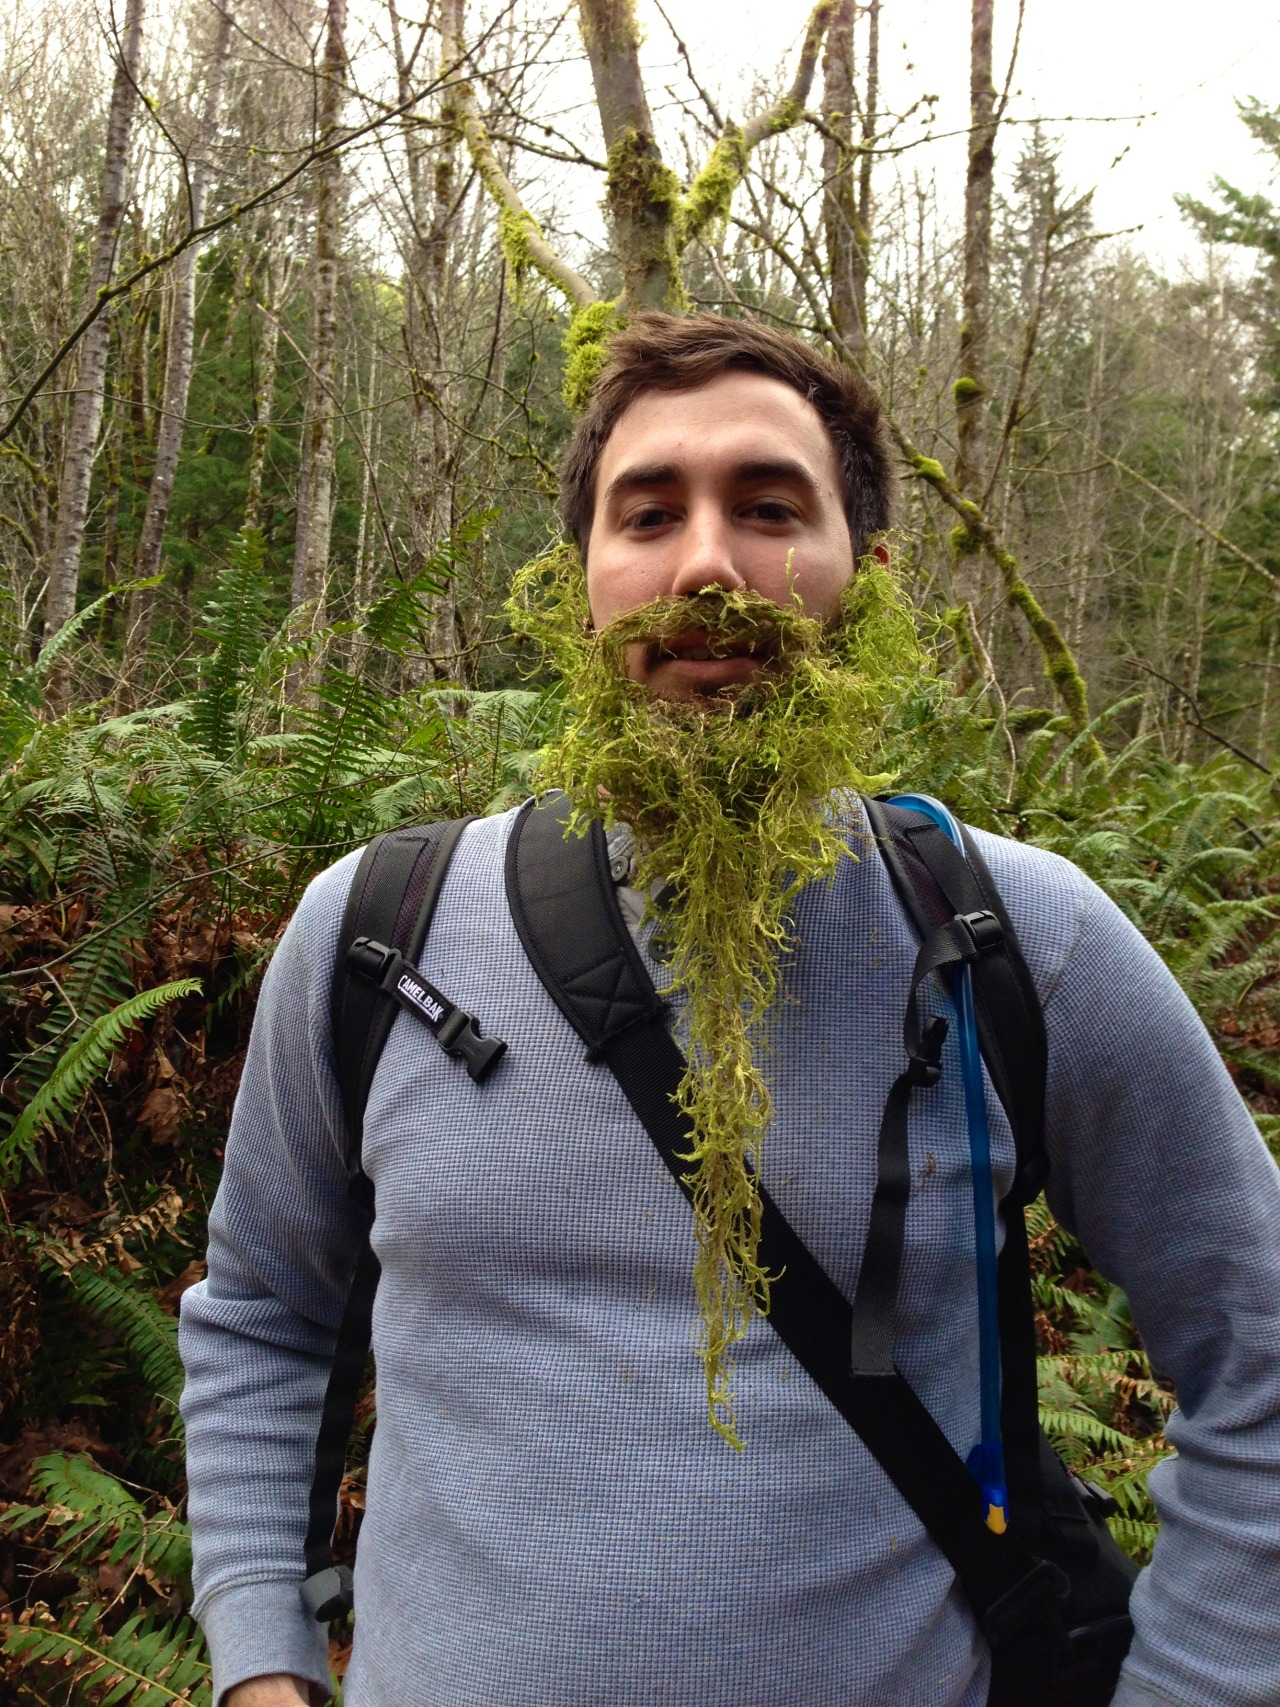 Elliot sprouted a moss beard 2 minutes into the hike.